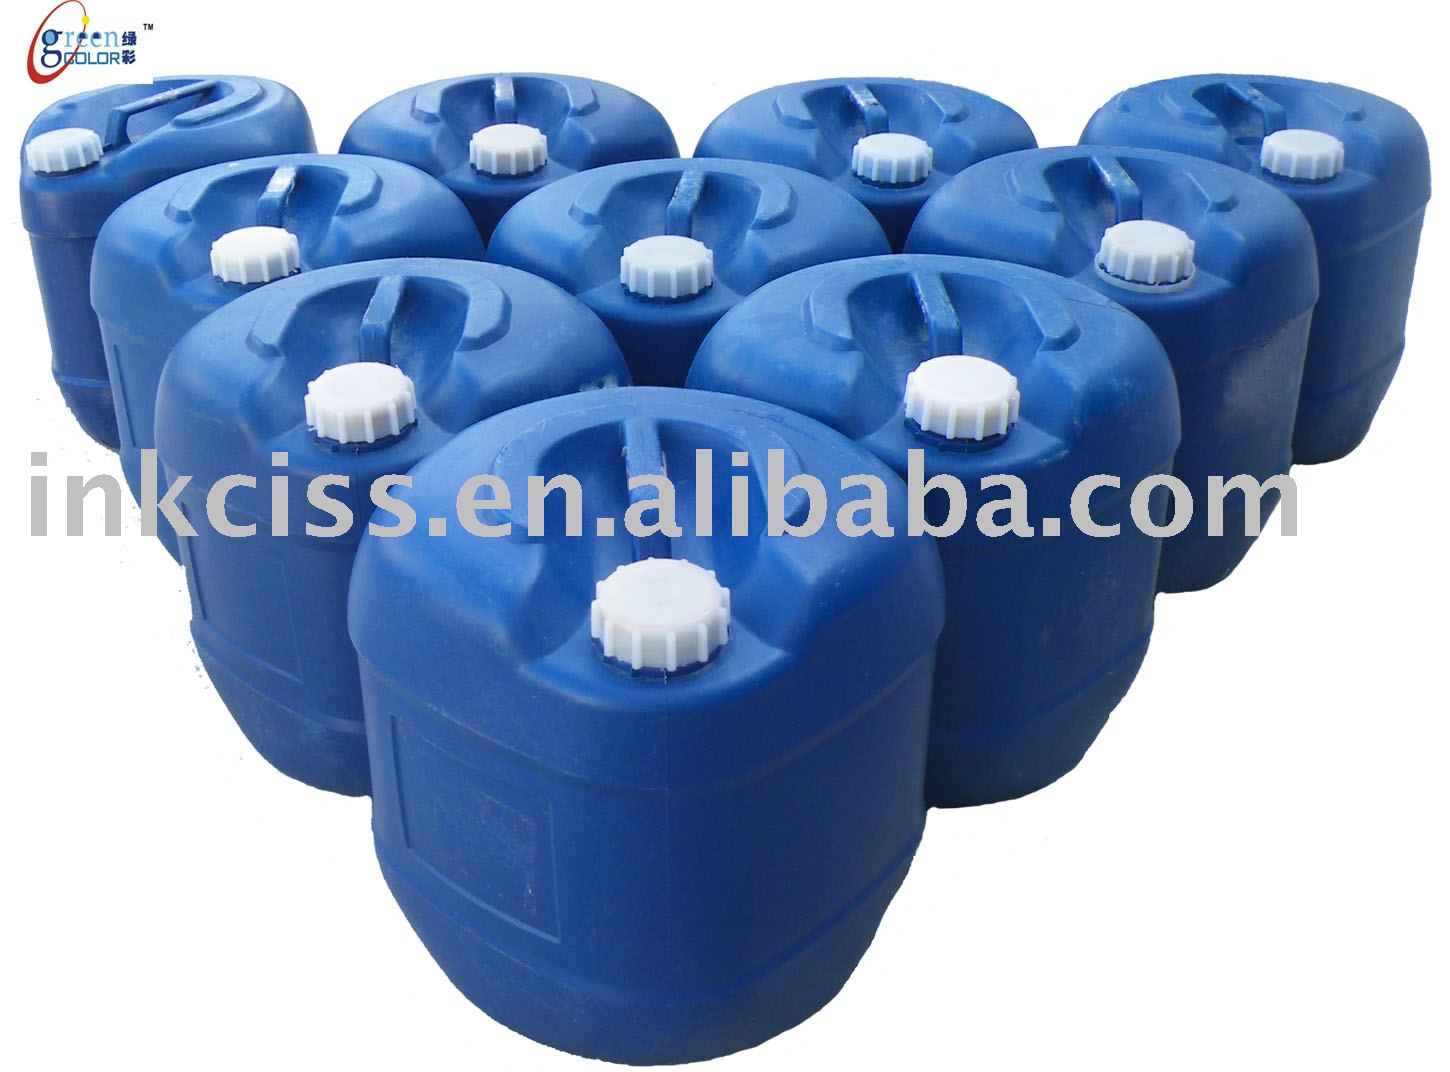 20 liter dye ink for EP HP CA BR with bulk packing